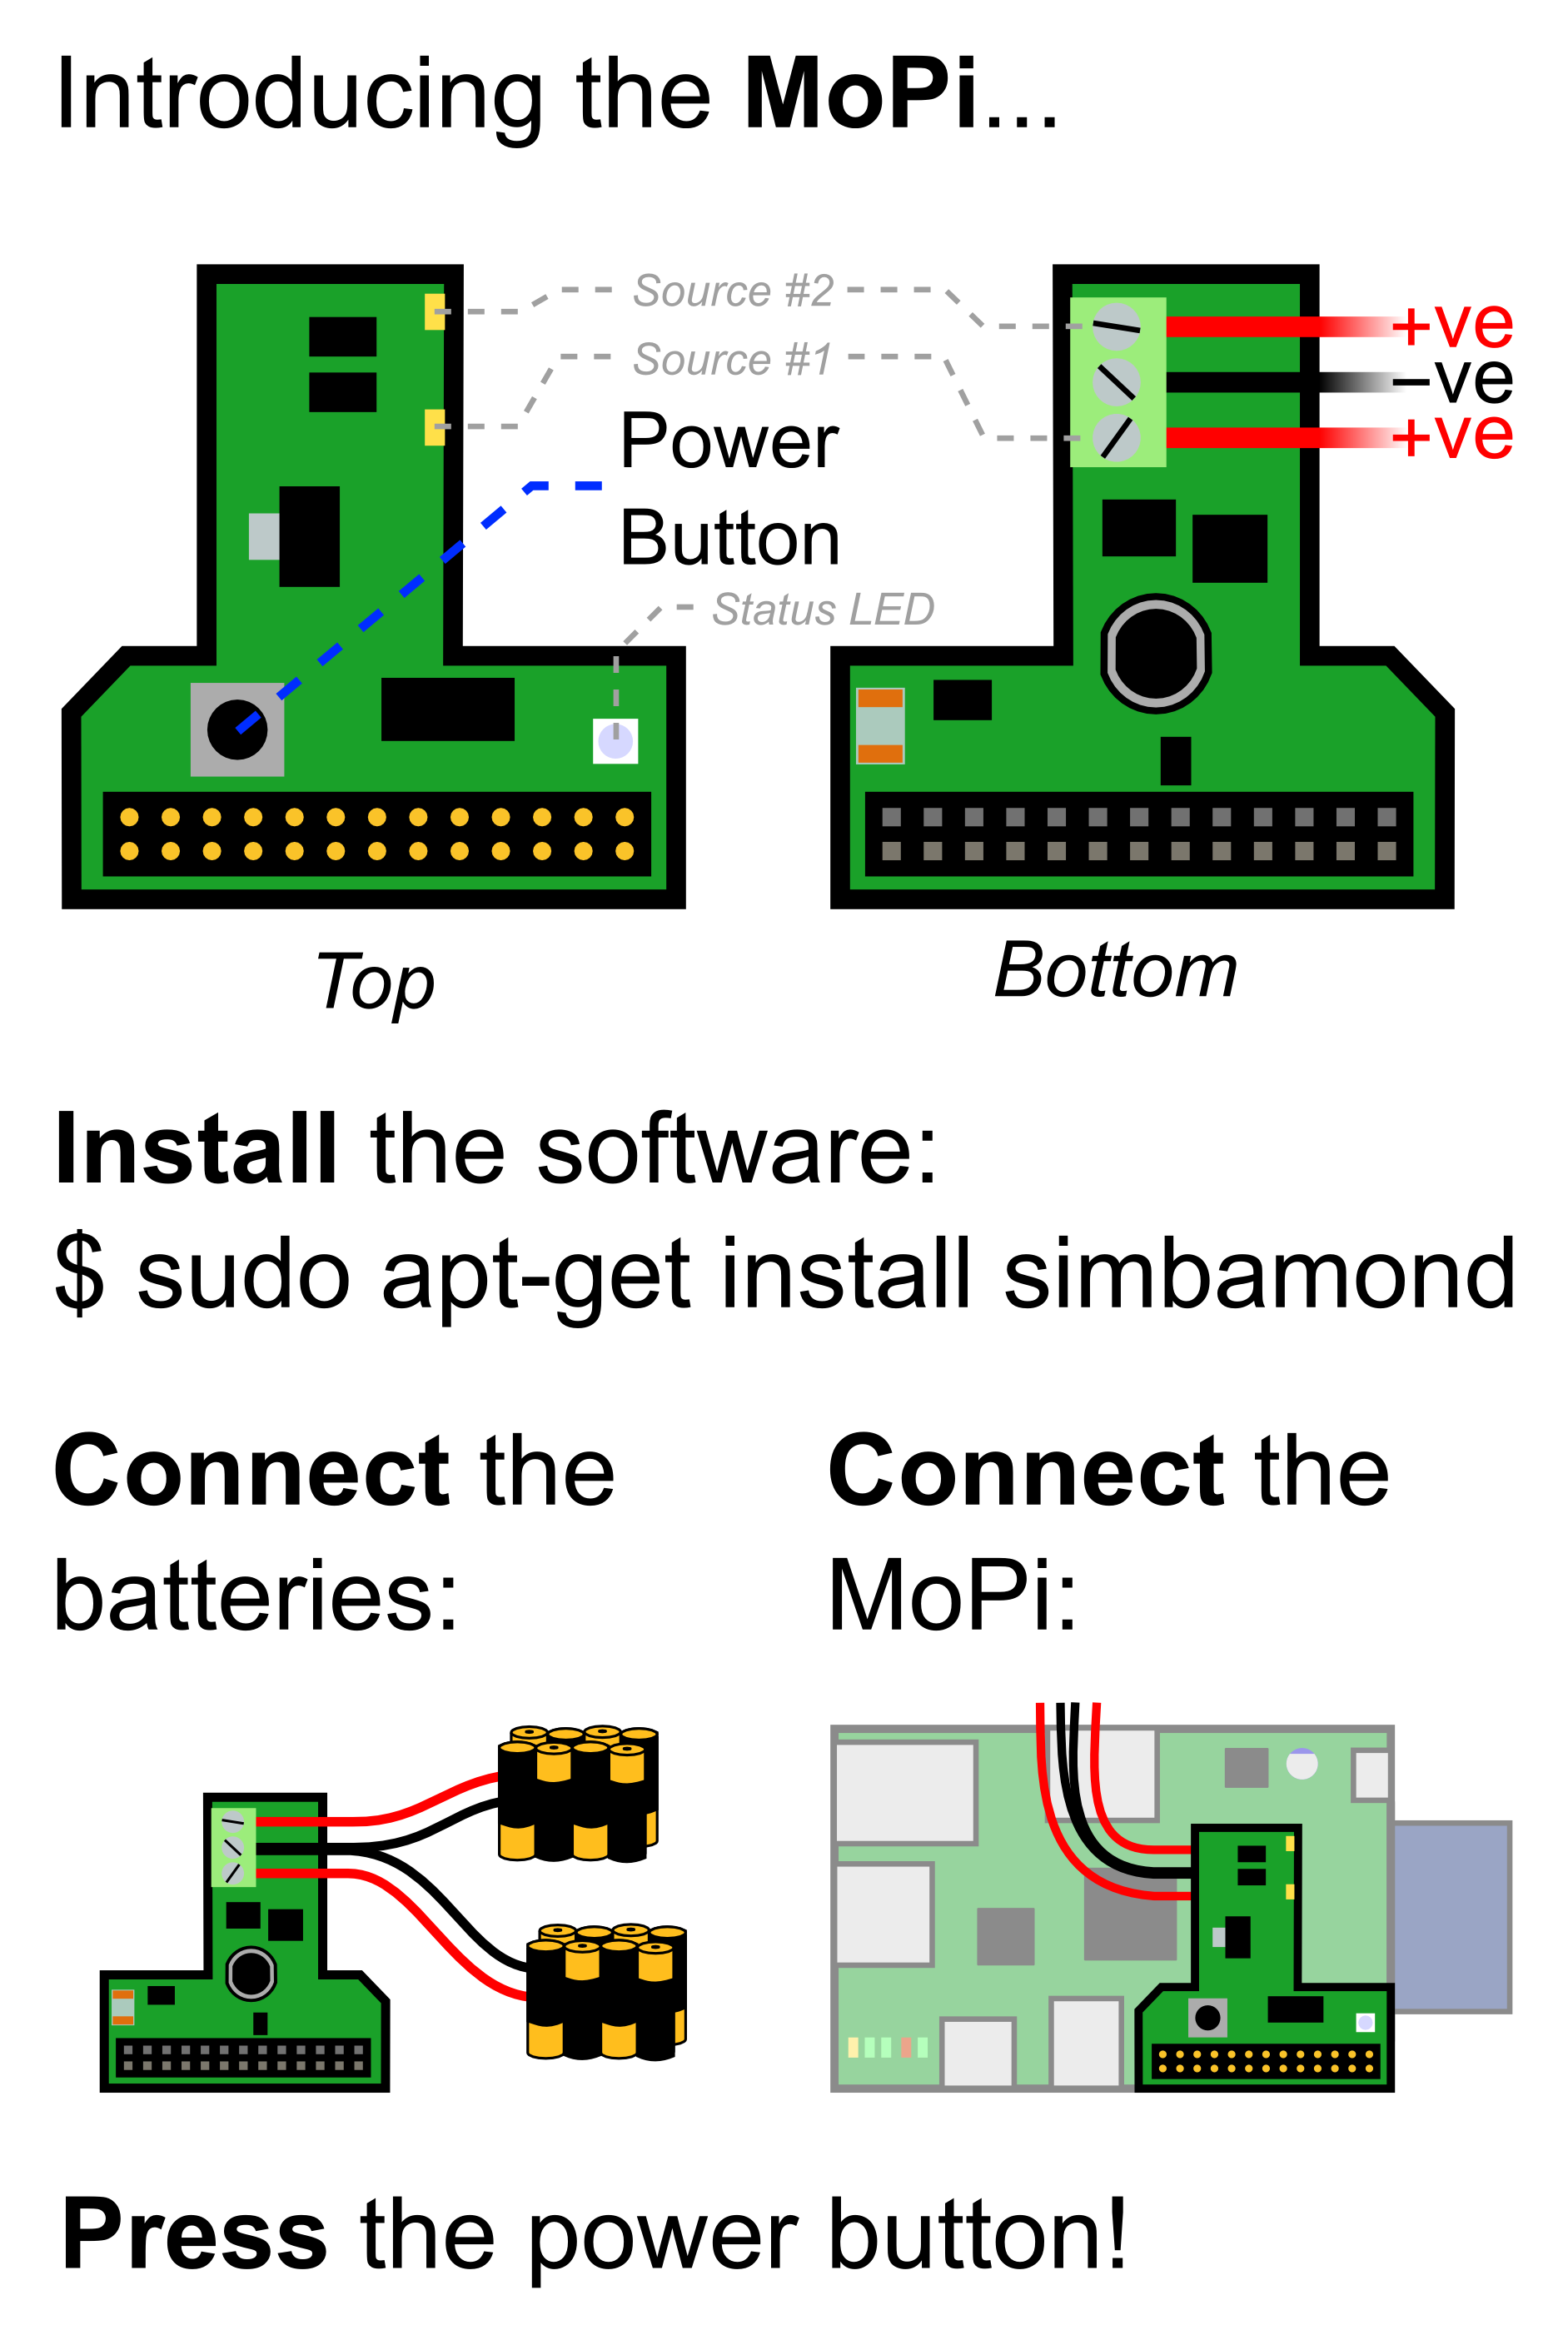 Mopi Hot Swap Mobile Power For The Pi Usb Powered Phone Charger Circuit Diagram Quick Start Guide